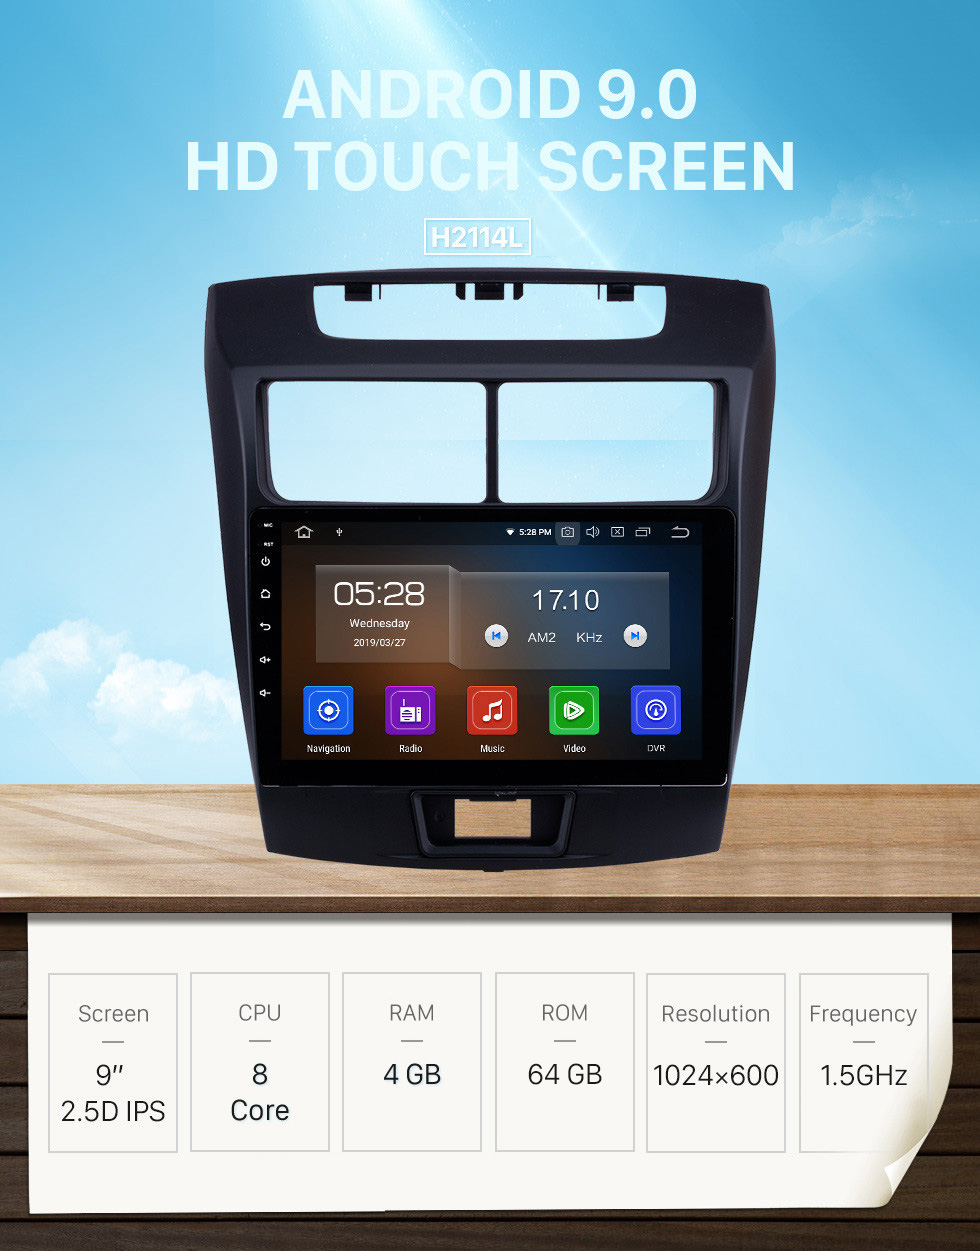 Seicane Android 9.0 Car Radio 9 inch HD Touchscreen Bluetooth GPS Navigation for 2010-2016 Toyota Avanza Head unit support 4G WIFI DVD Player 1080P Video USB Carplay Backup Camera TPMS